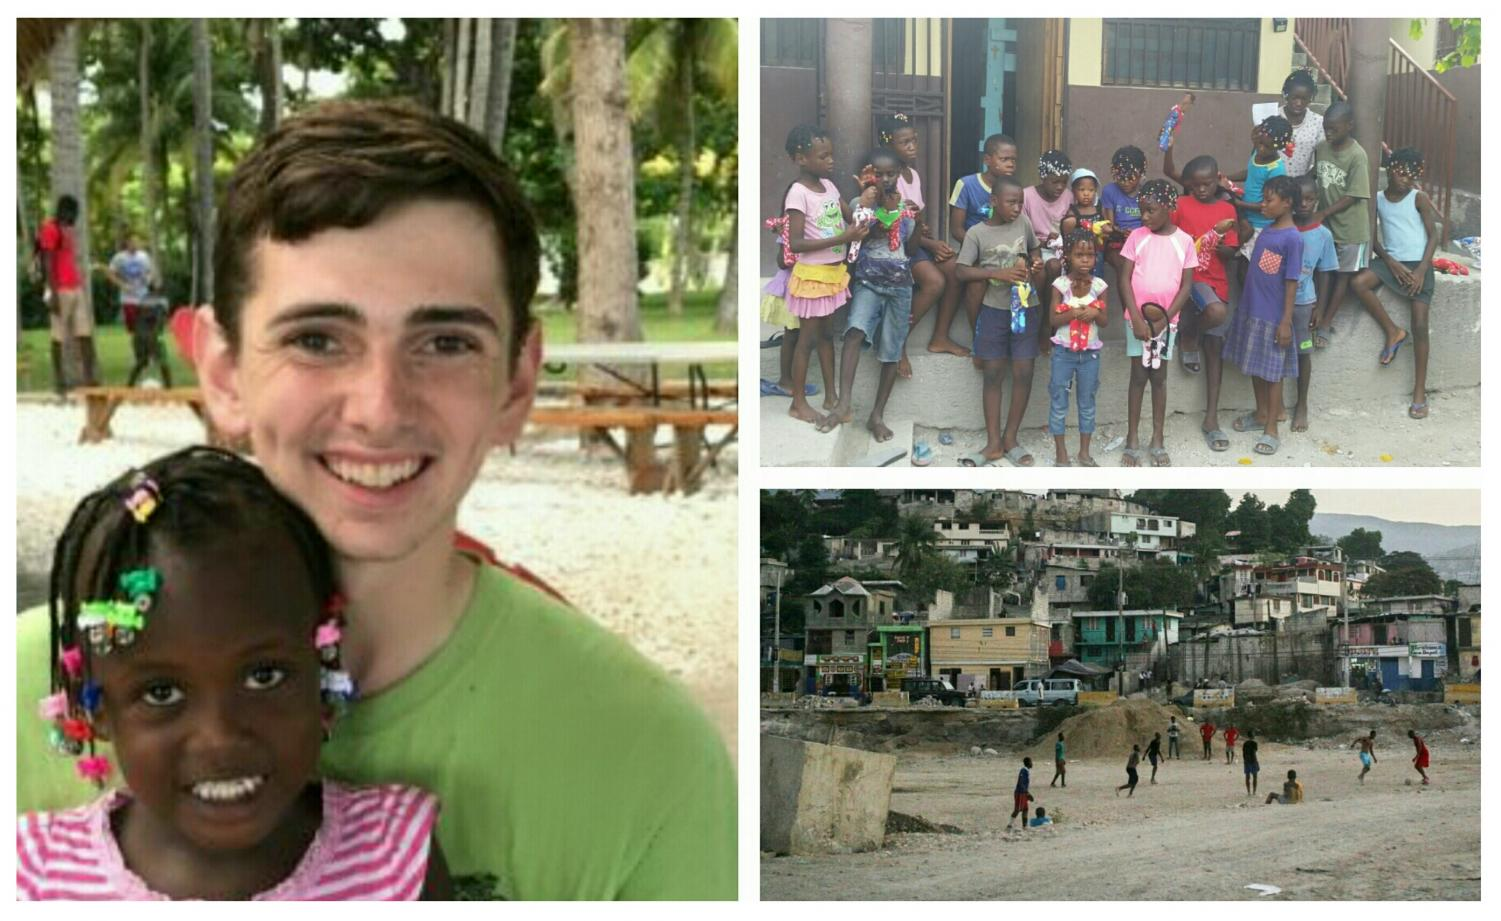 Bailey Davis volunteering with Life Connection Mission in Montrouis, Haiti